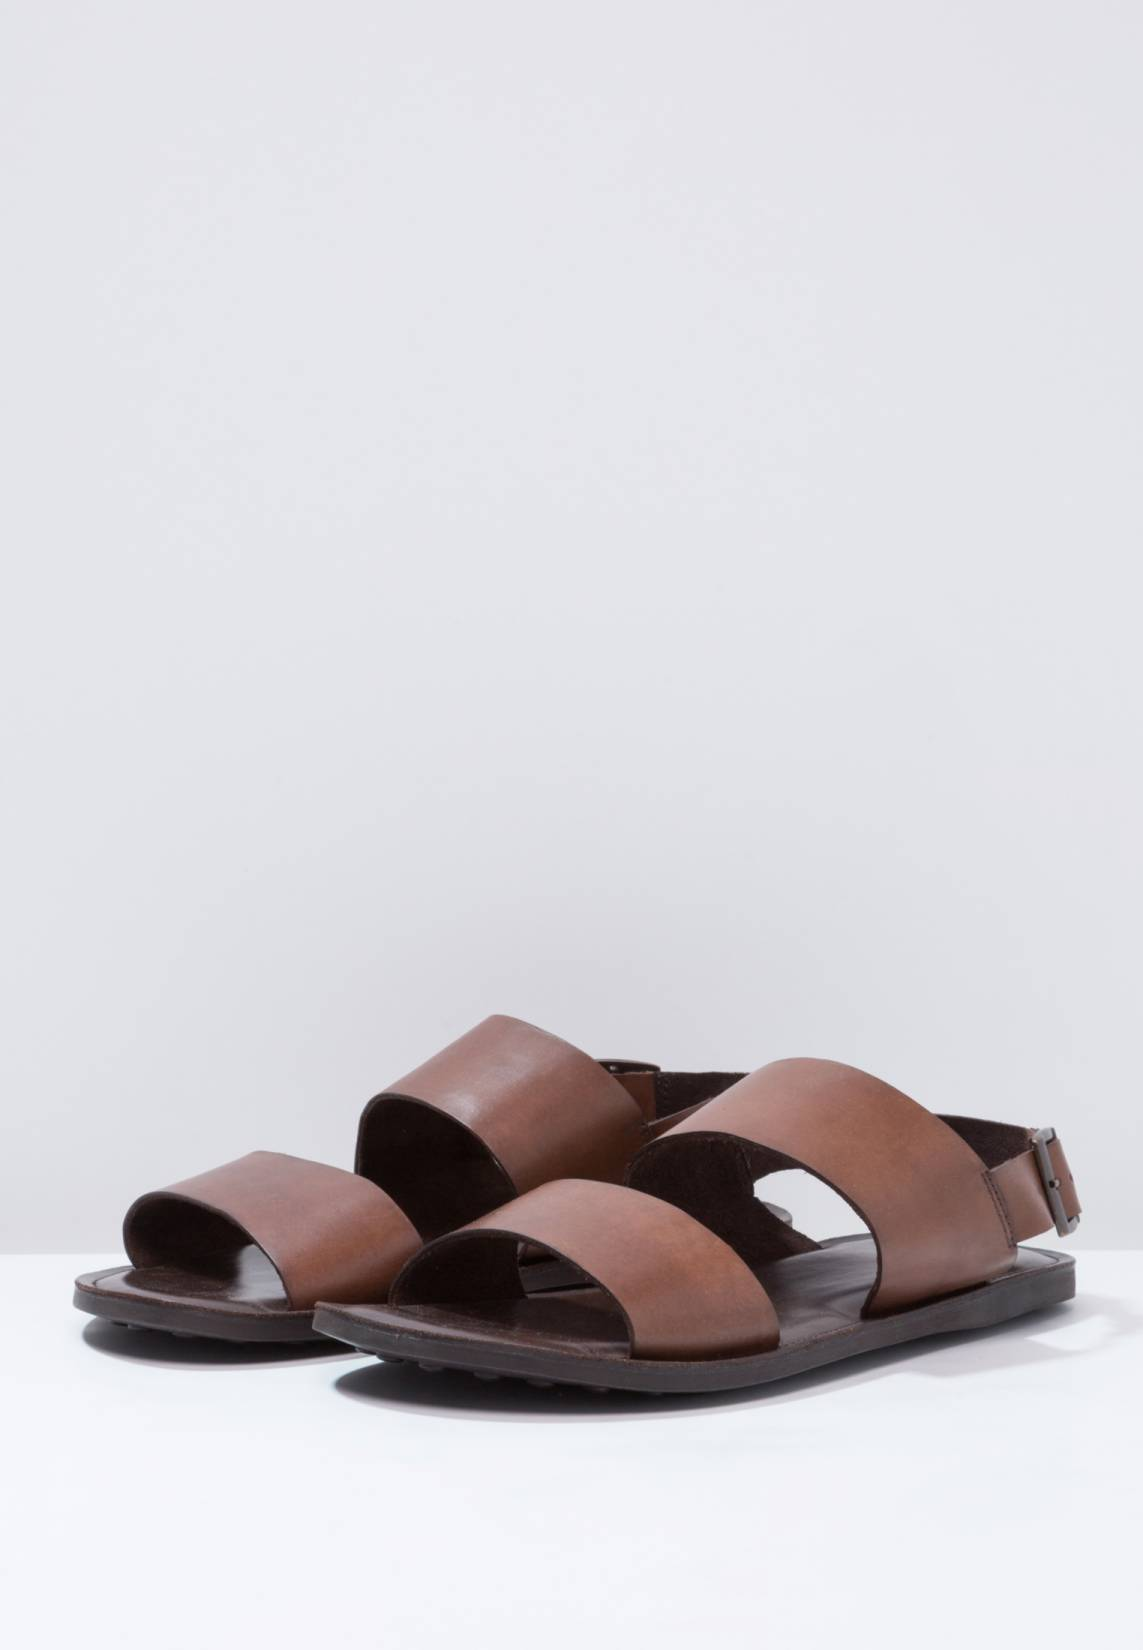 Pier One brown Sandals